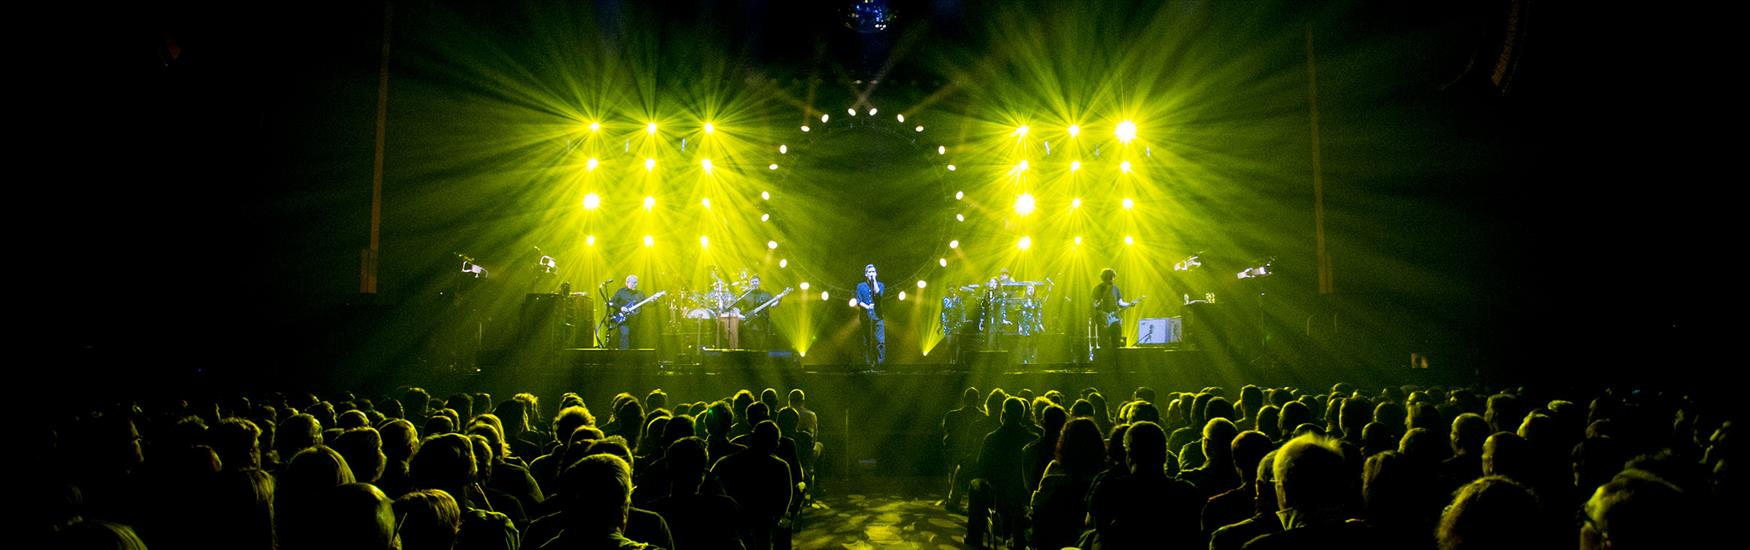 band performing live at the Bournemouth International Centre with green light shining behind